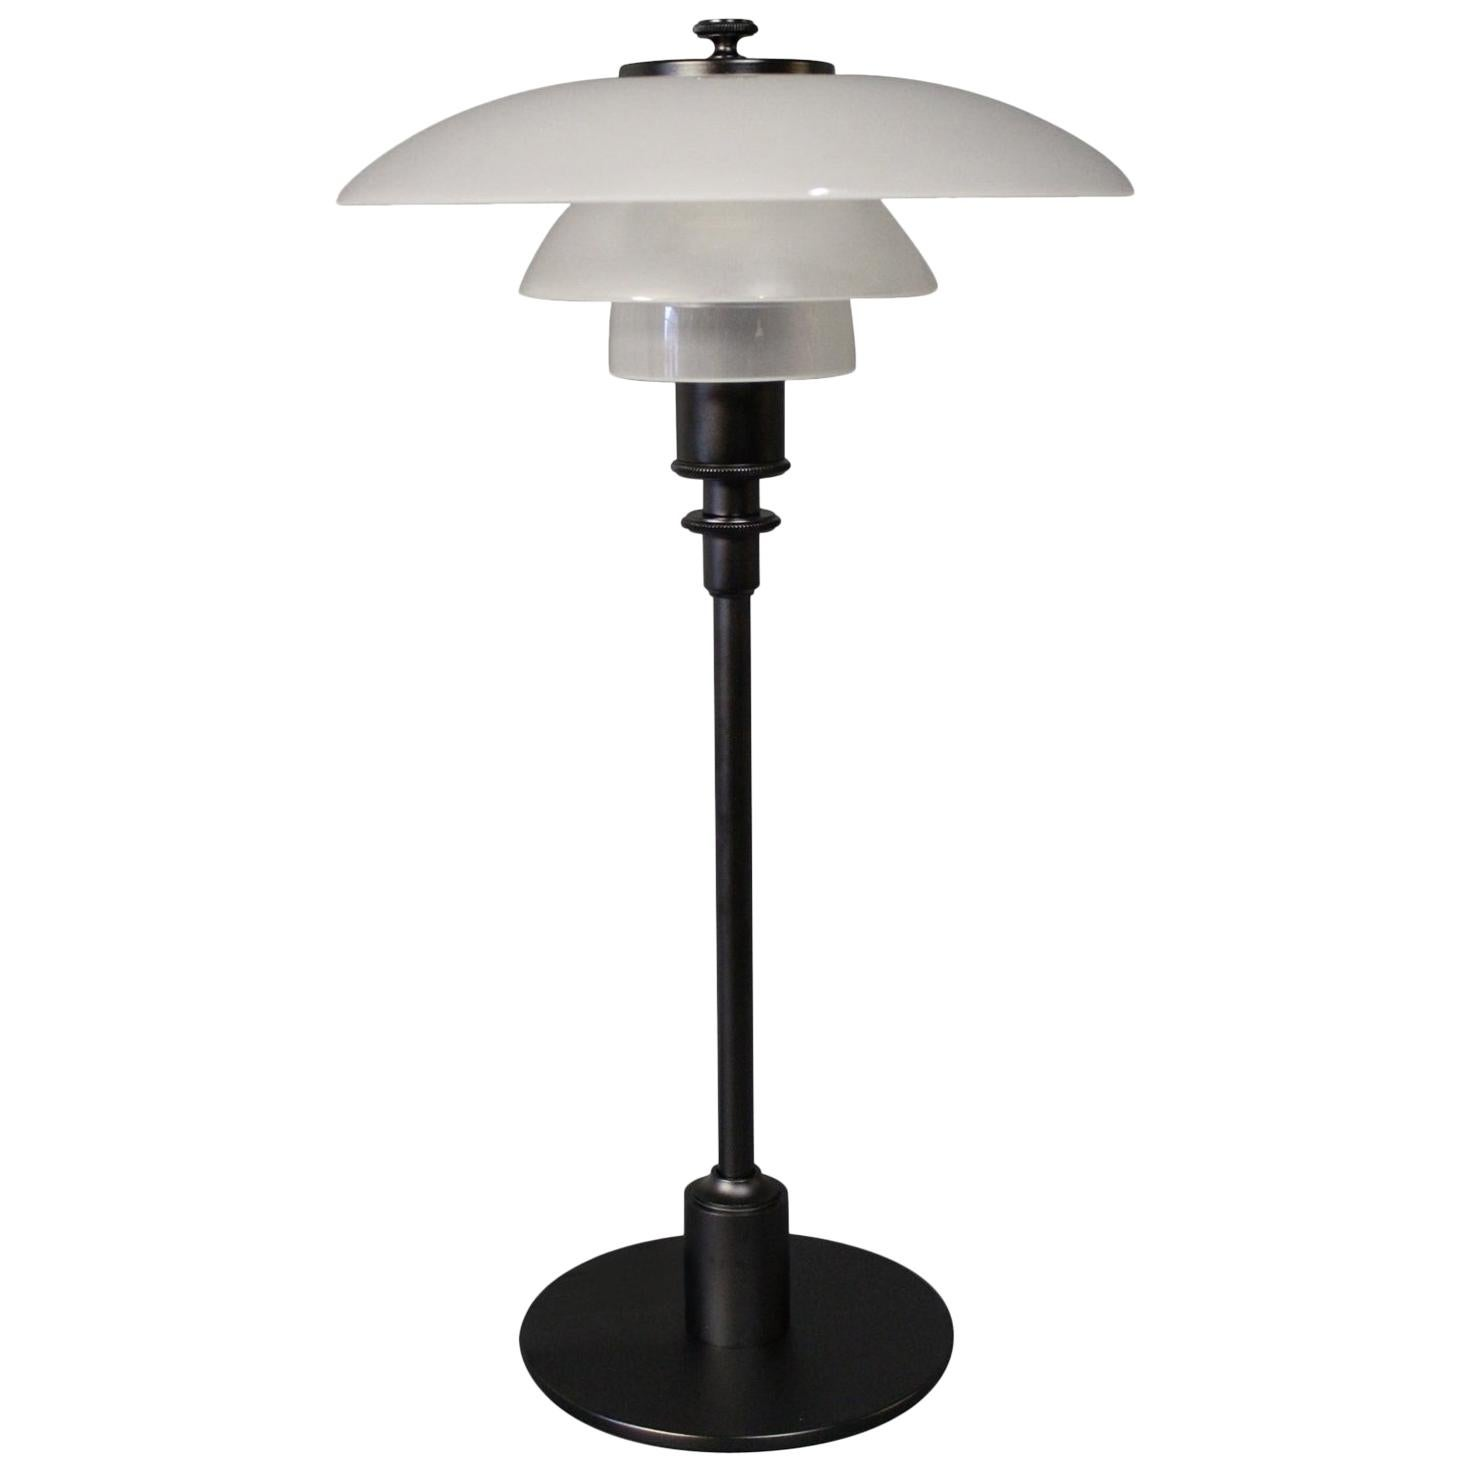 PH 2/1 Table Lamp, Anniversary Model, by Poul Henningsen and Louis Poulsen